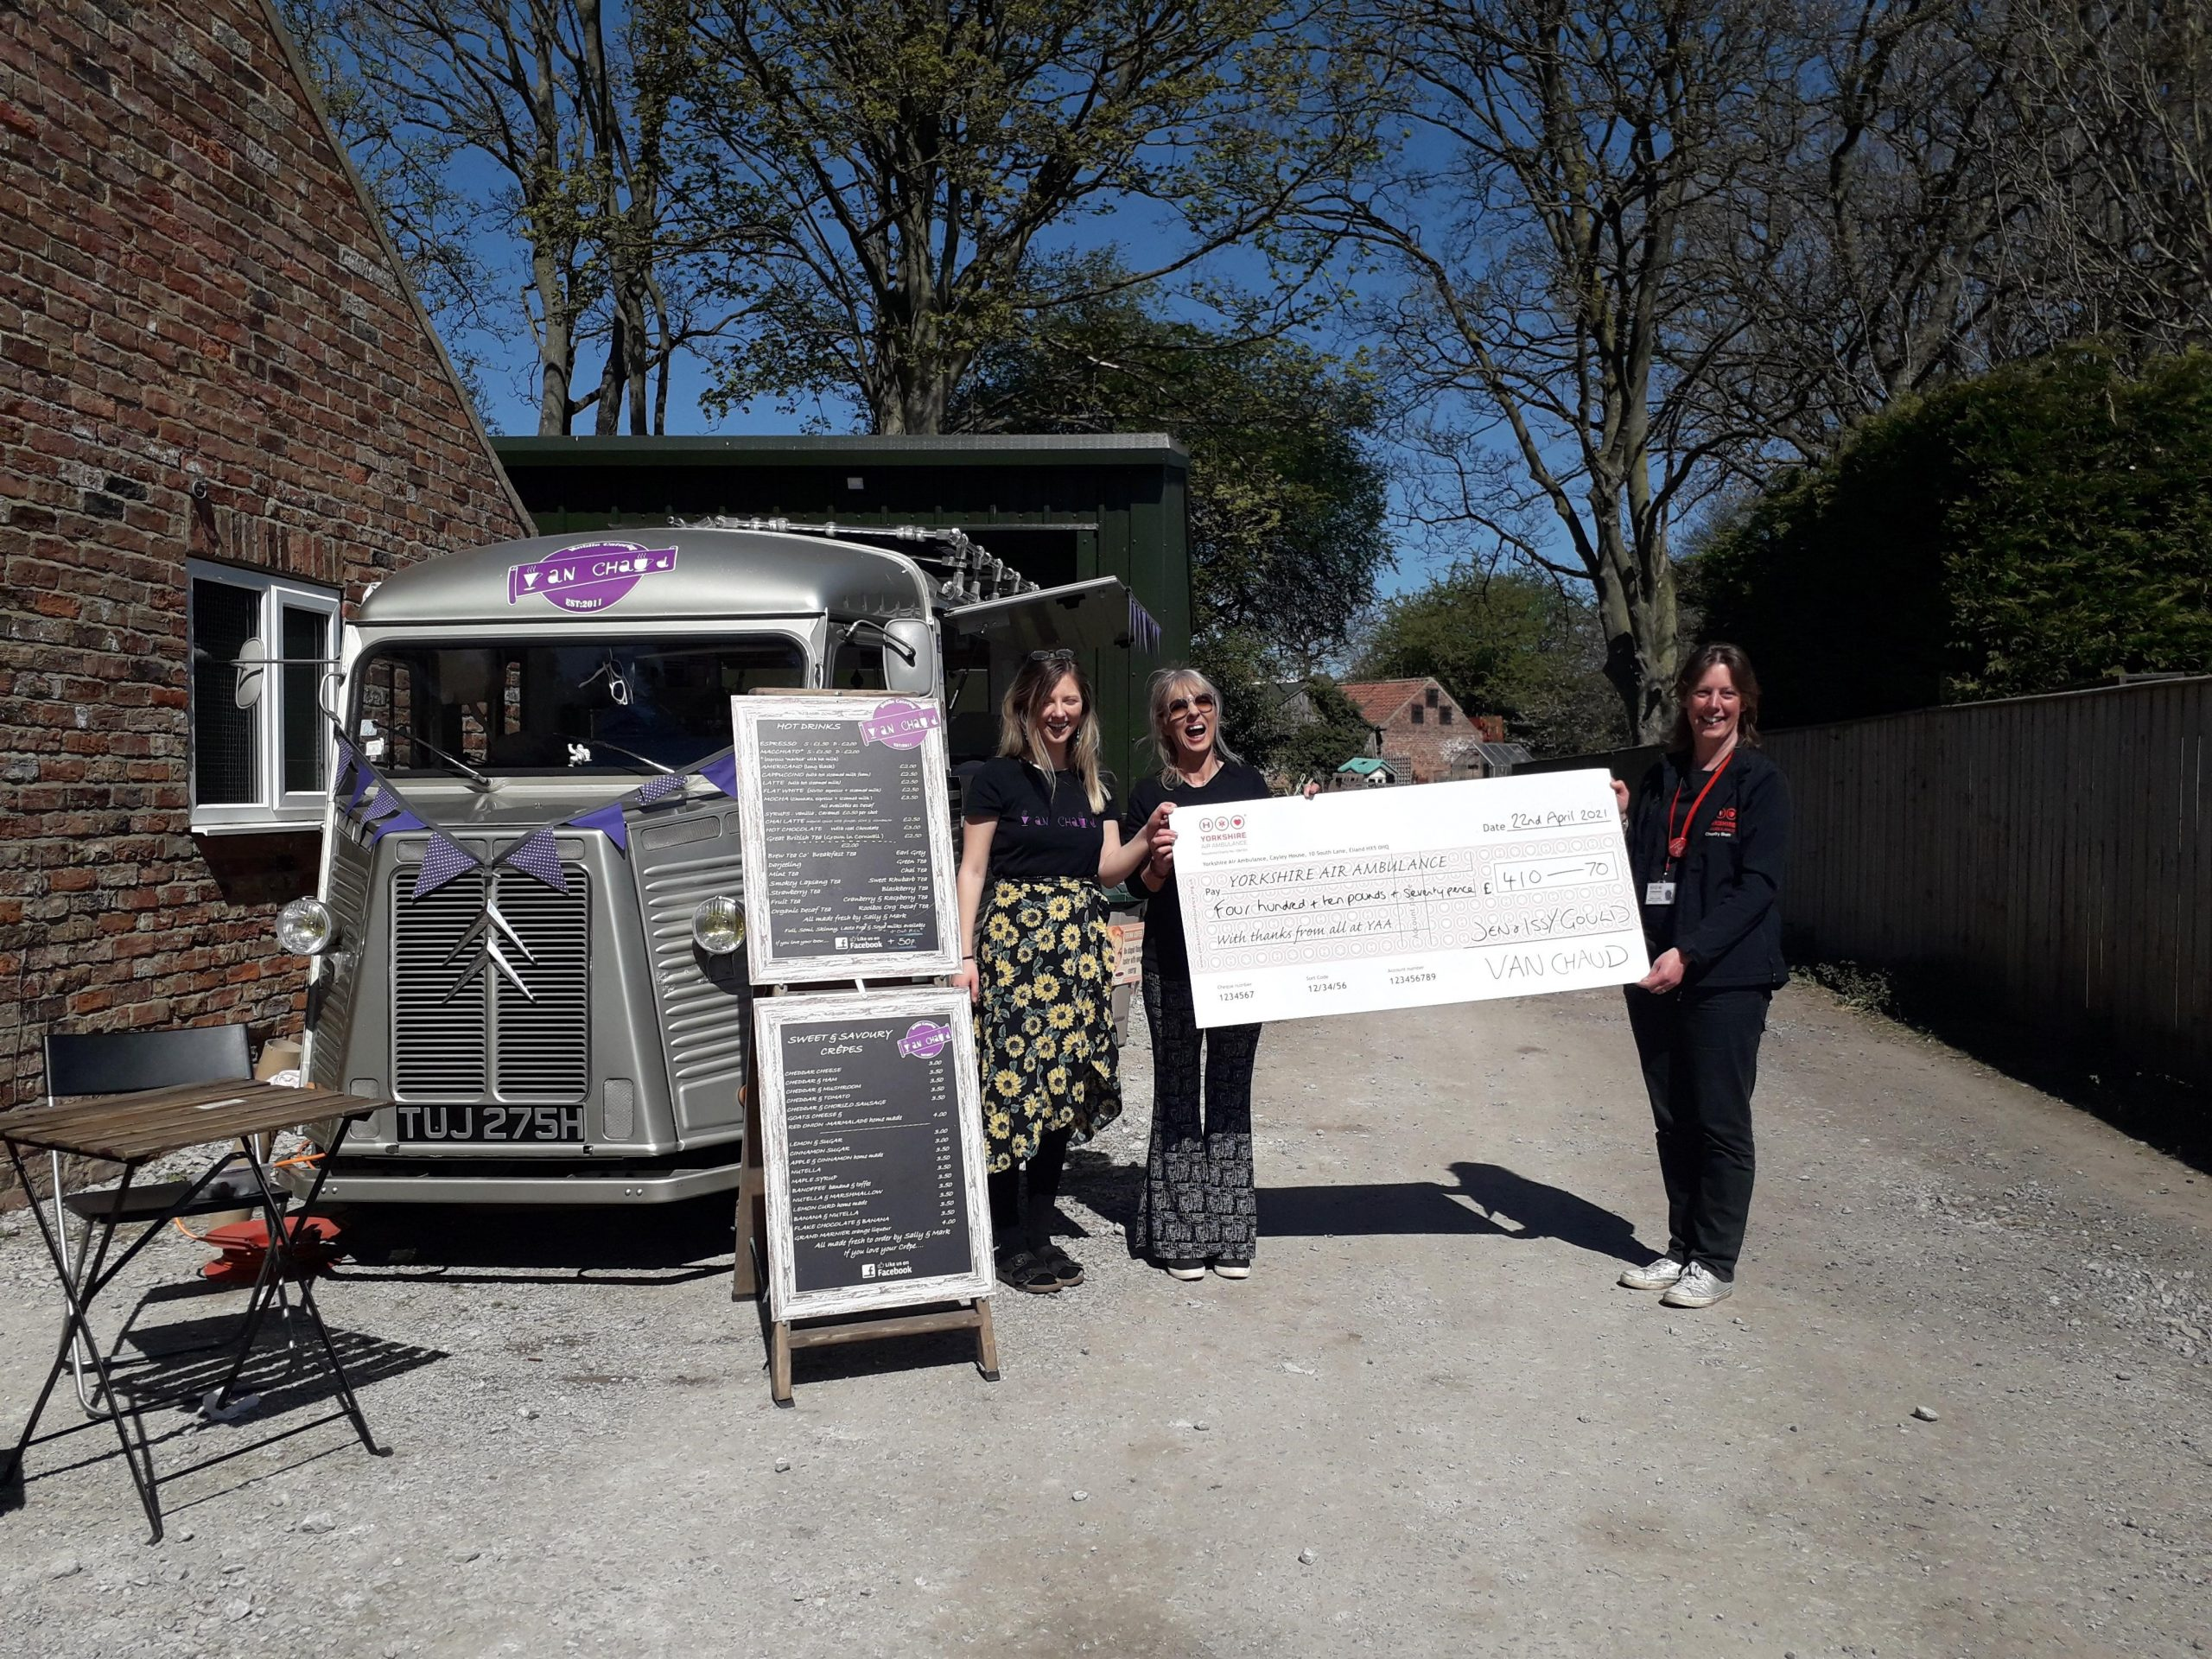 Coffees & Crepes for donations from a van on their drive